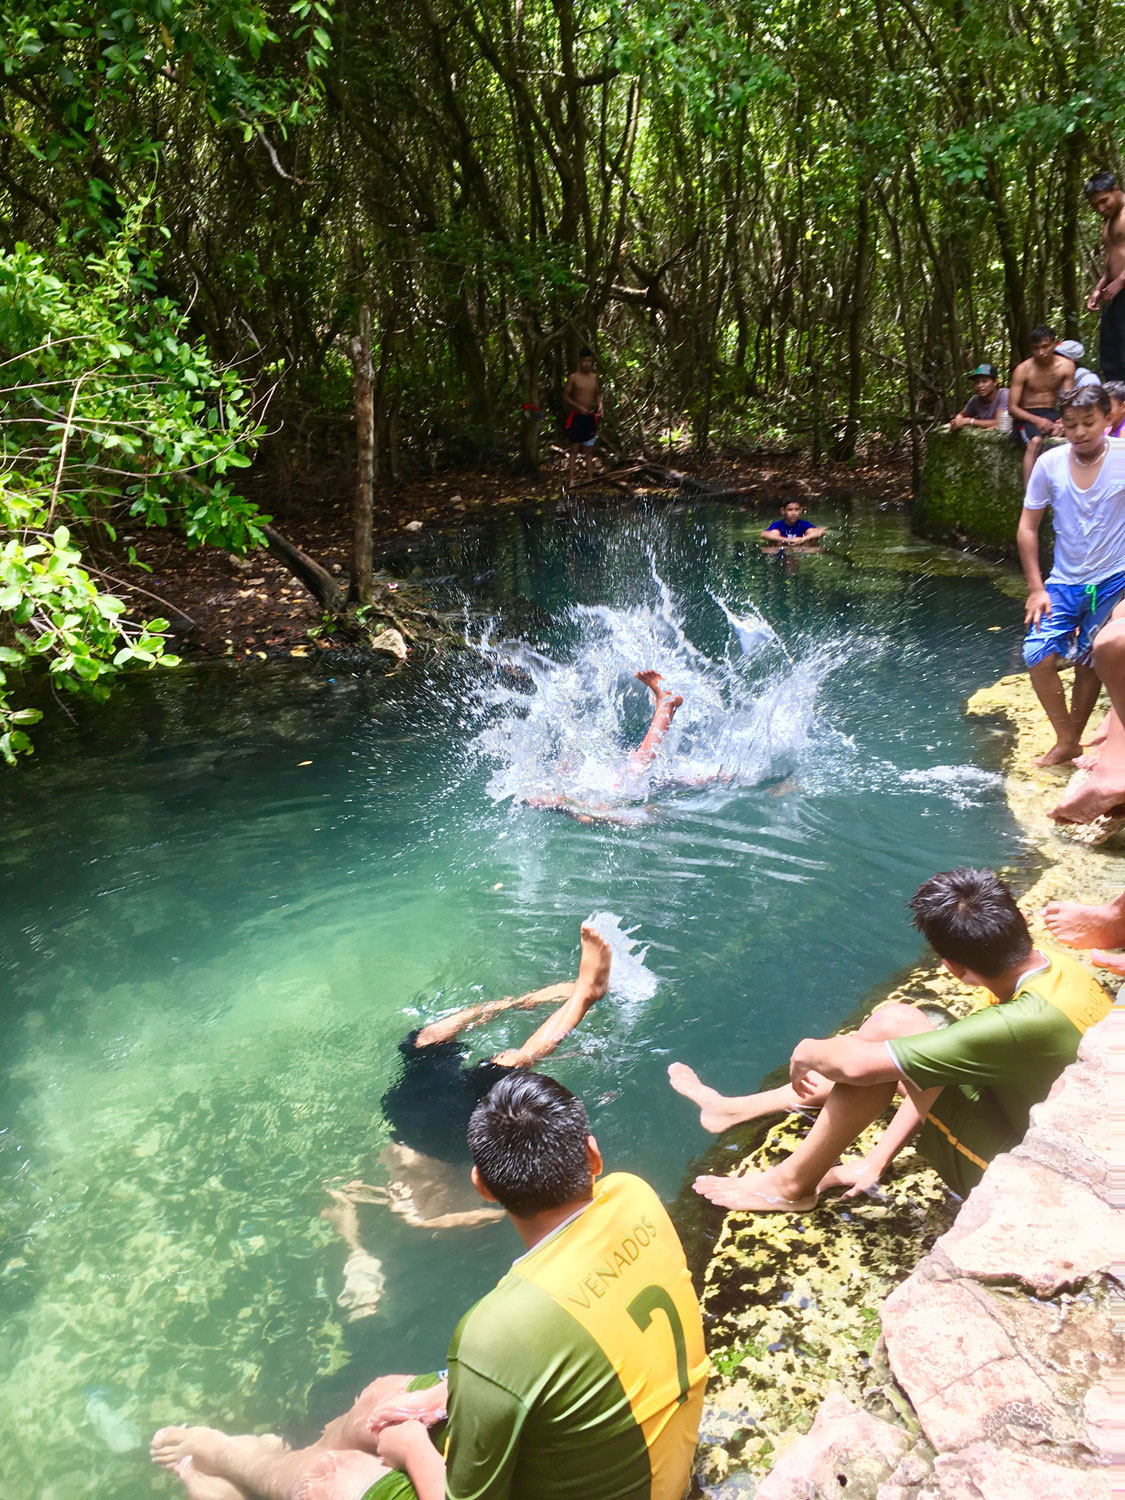 And teenagers prefer jumping in the deeper cenote.